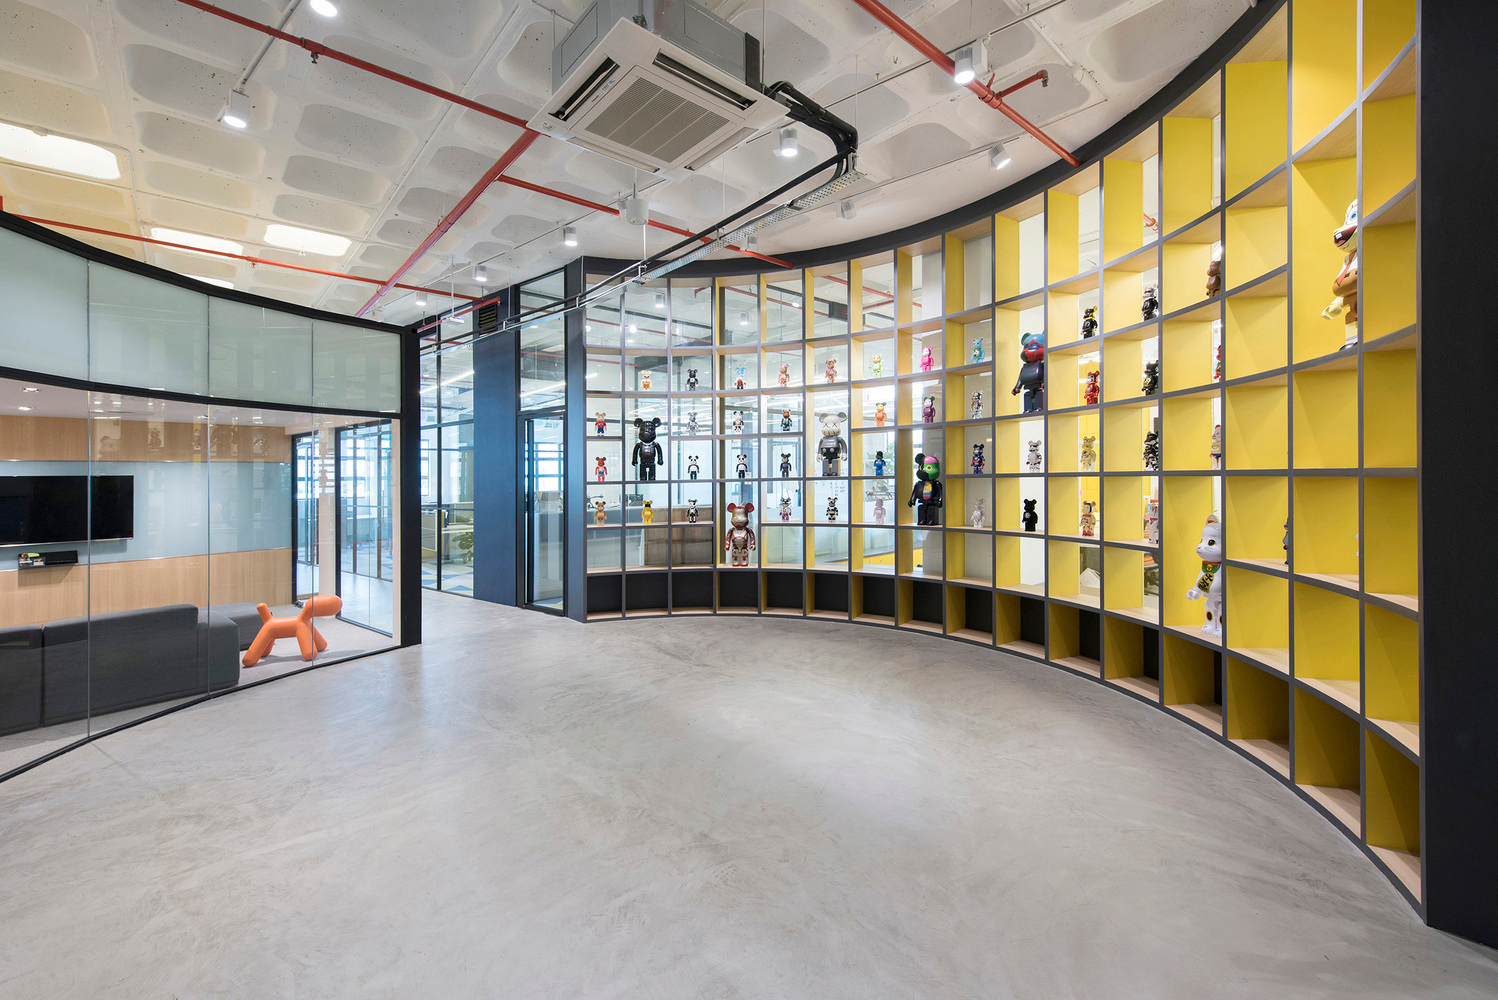 honestbee's Singapore Headquarters Is a Stunning Converted Warehouse Space